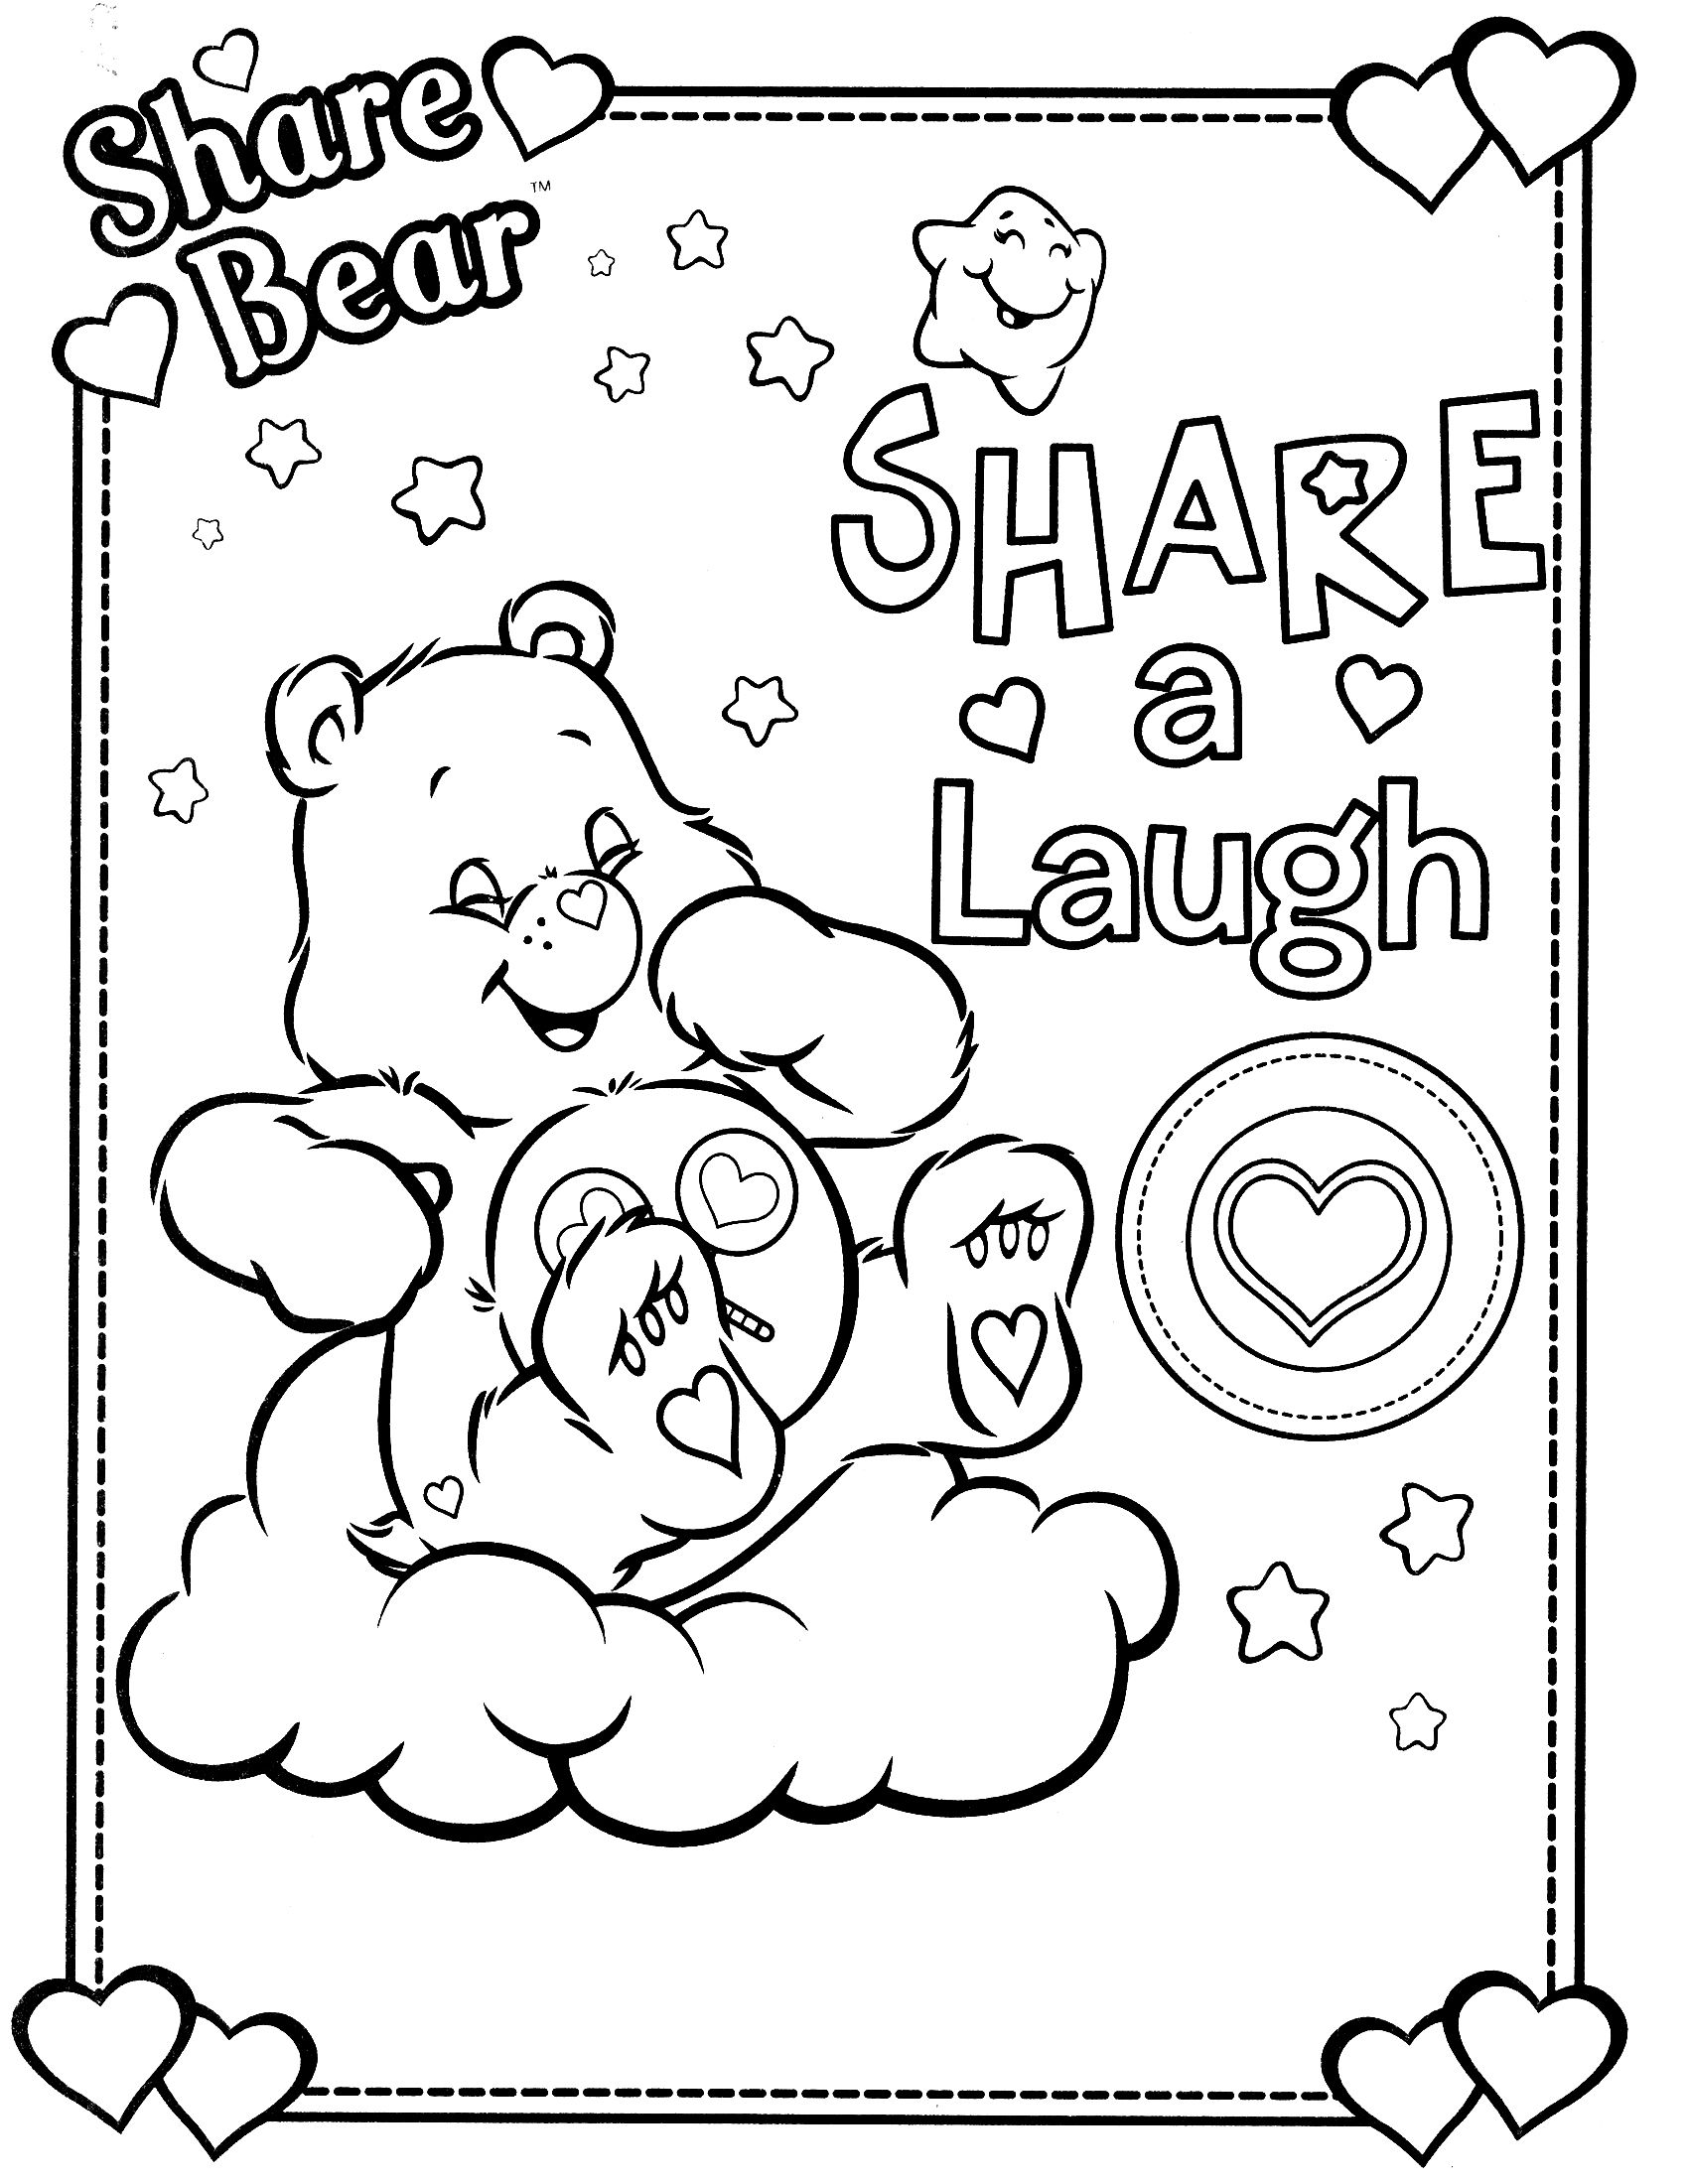 care bears coloring page | COLORING PAGES | Pinterest | Care bears ...